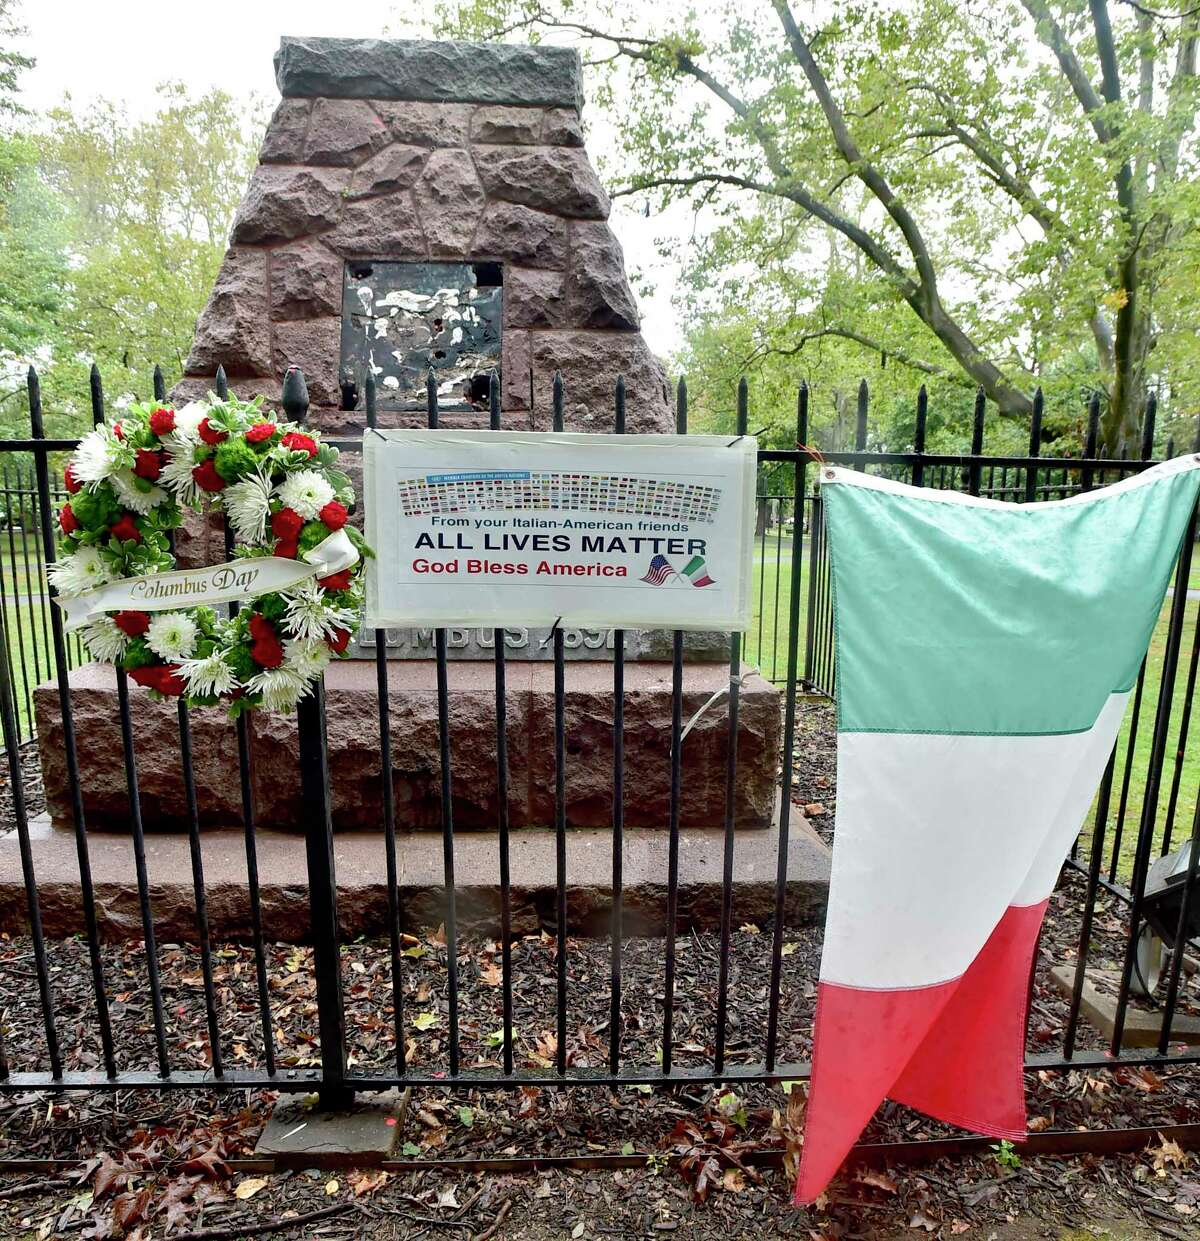 Members of various Italian-American heritage clubs and societies in the New Haven area and supporters from Bridgeport put up a wreath, a sign and an Italian flag this year at the pedestal of the removed statue of Christopher Columbus on Wooster Square Park in New Haven to commemorate Columbus Day.